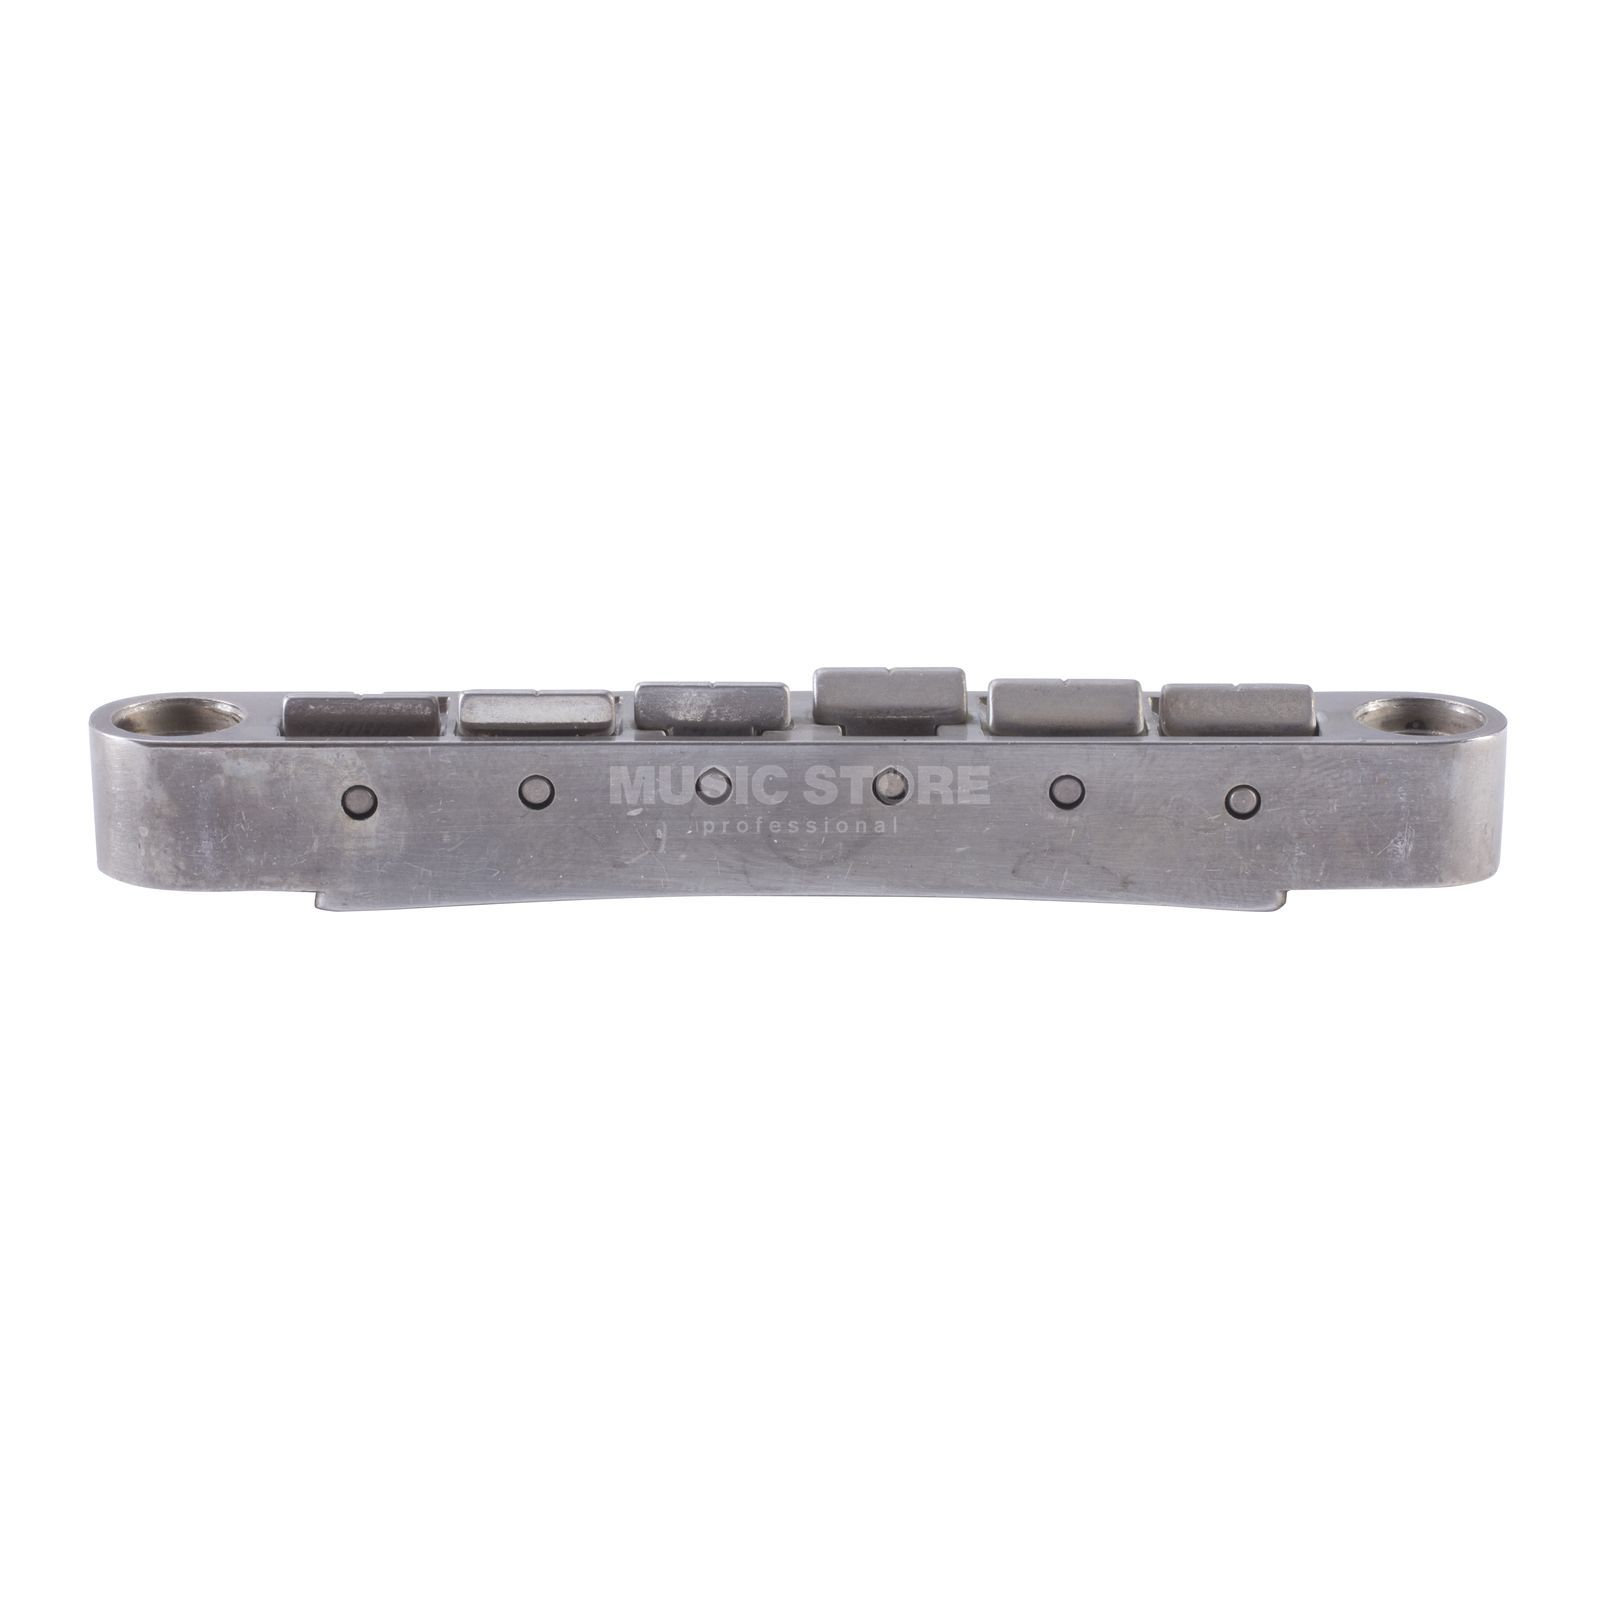 Faber ABRL-59NA Locking Bridge aged Nickel, Inch+Metrisch Produktbillede